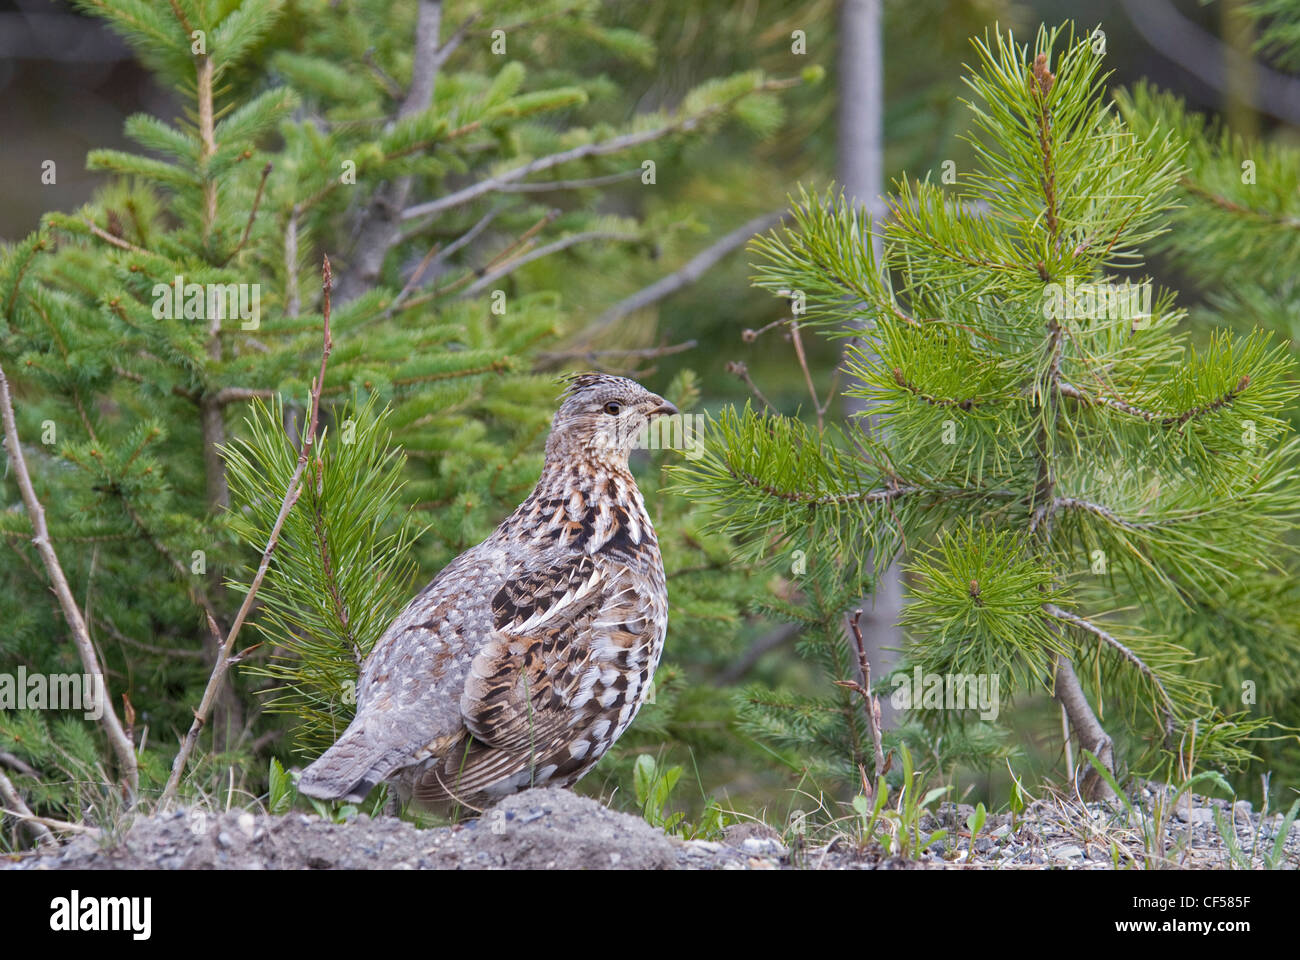 Ruffed Grouse Bonasa umbellus female with a catchlight in eye against a background of fresh green pine trees. Trevor - Stock Image